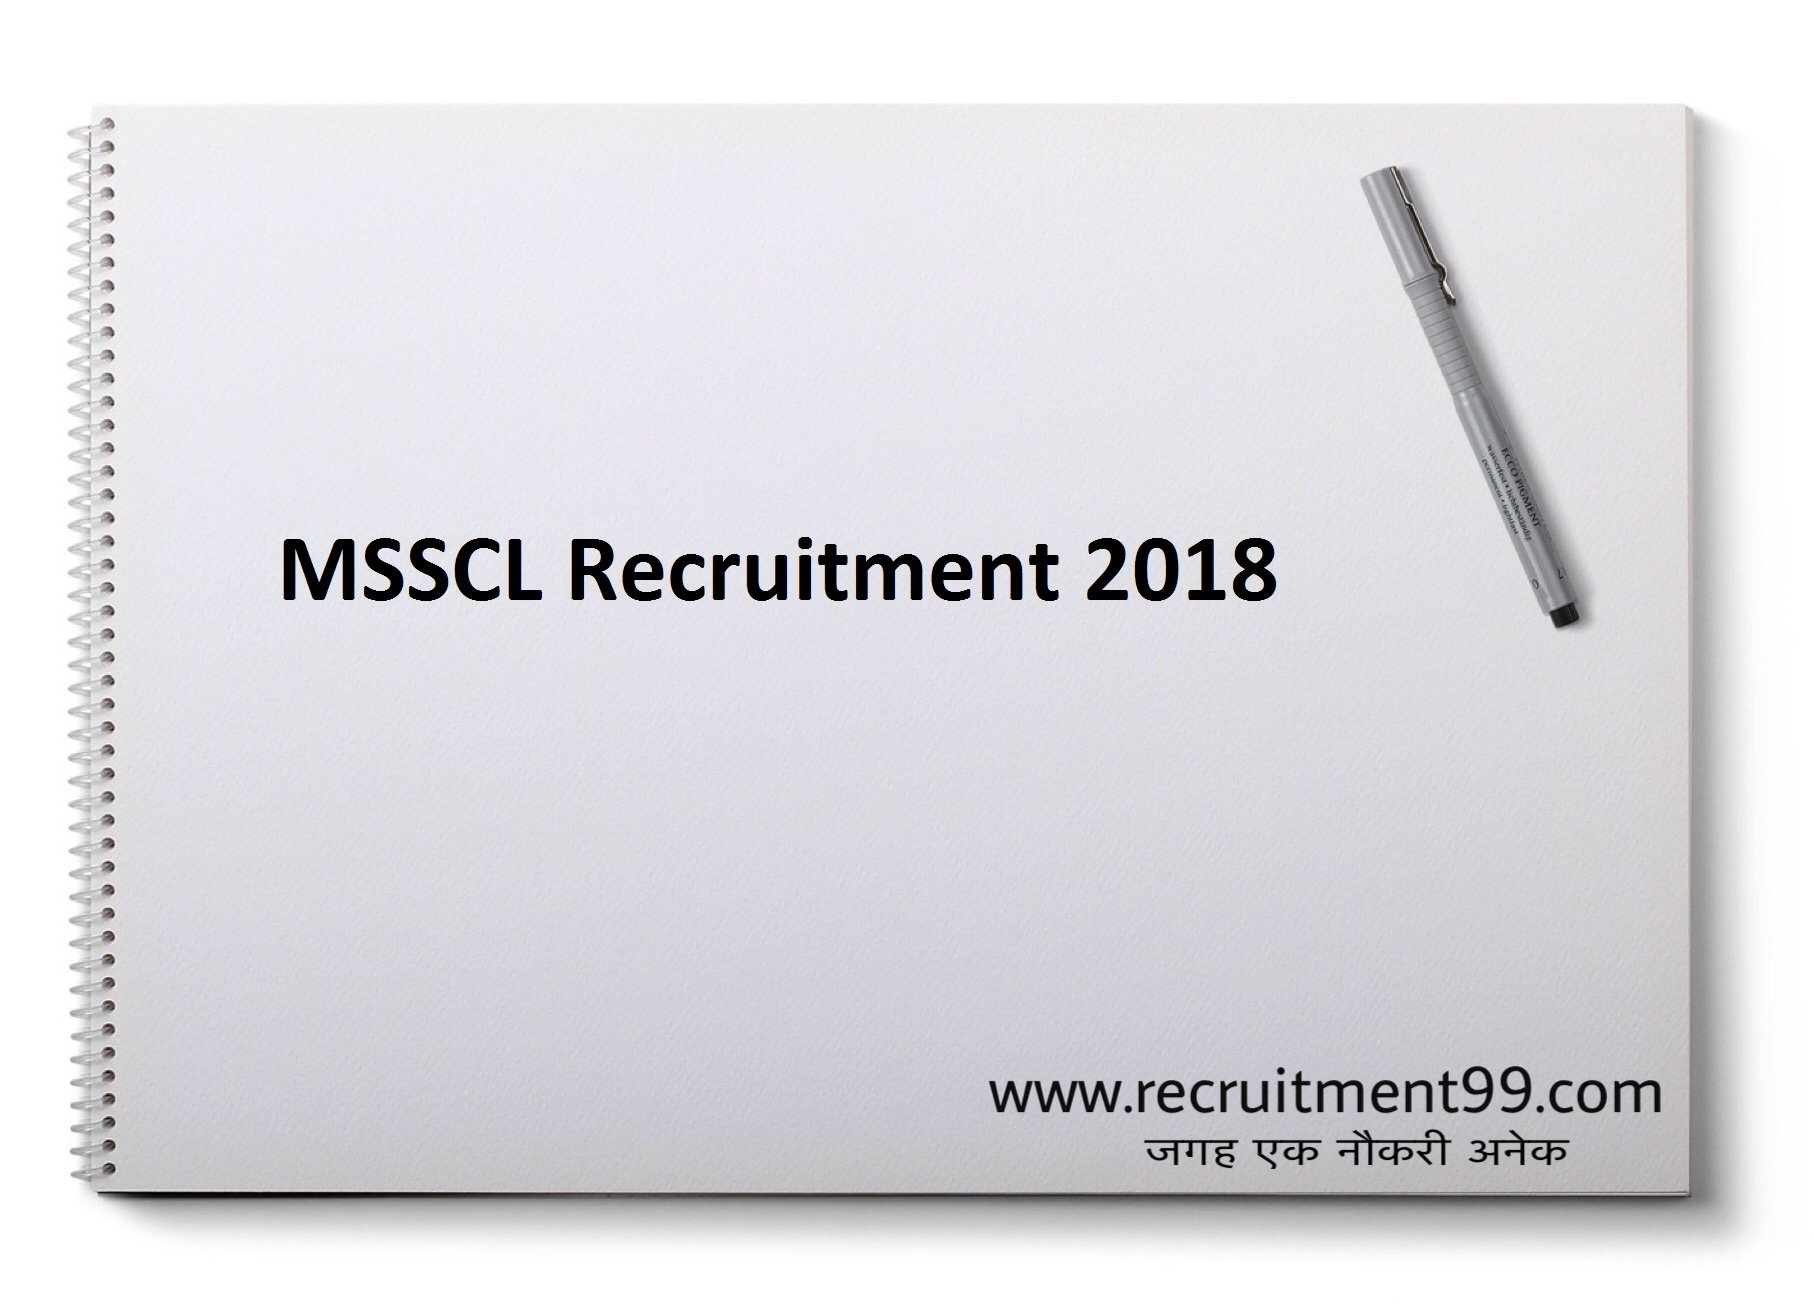 MSSCL District Manager Operator Peon Recruitment Admit Card & Result 2018